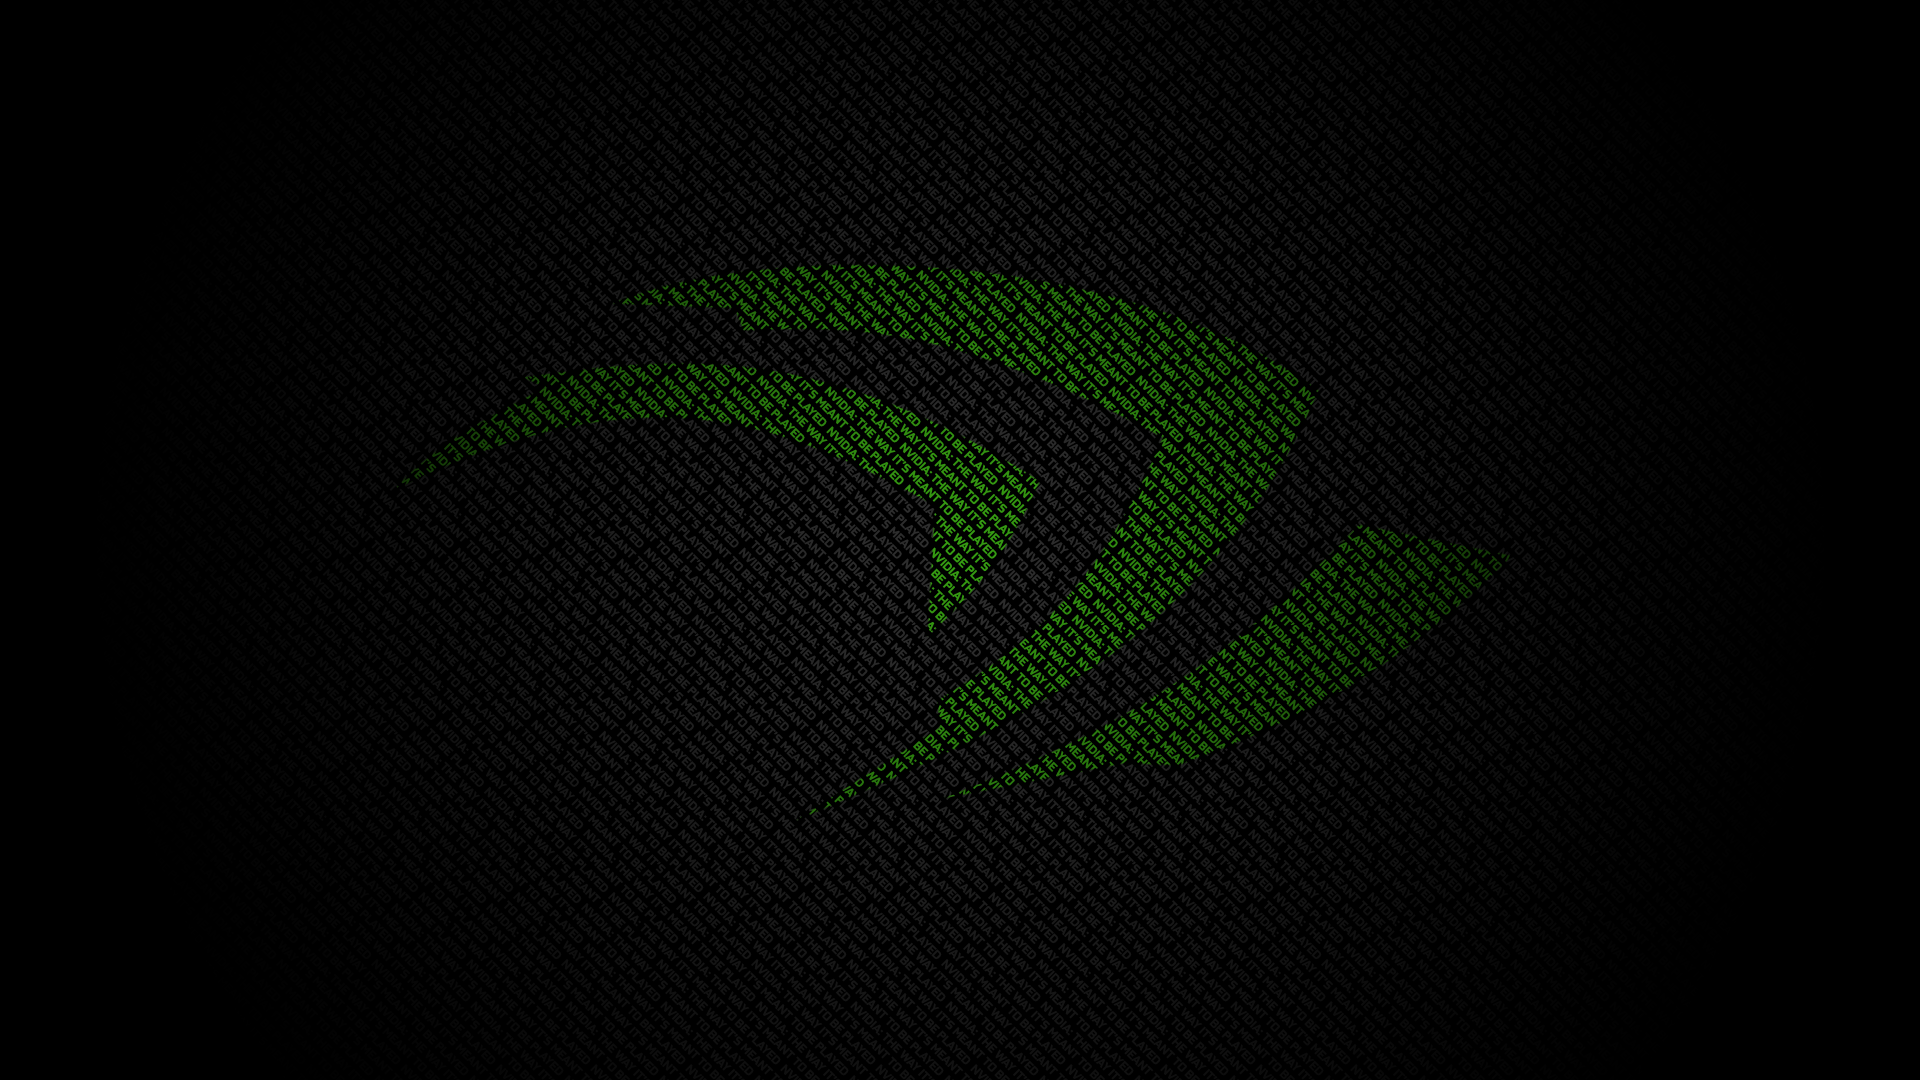 nvidia wallpaper 1080p red - photo #18